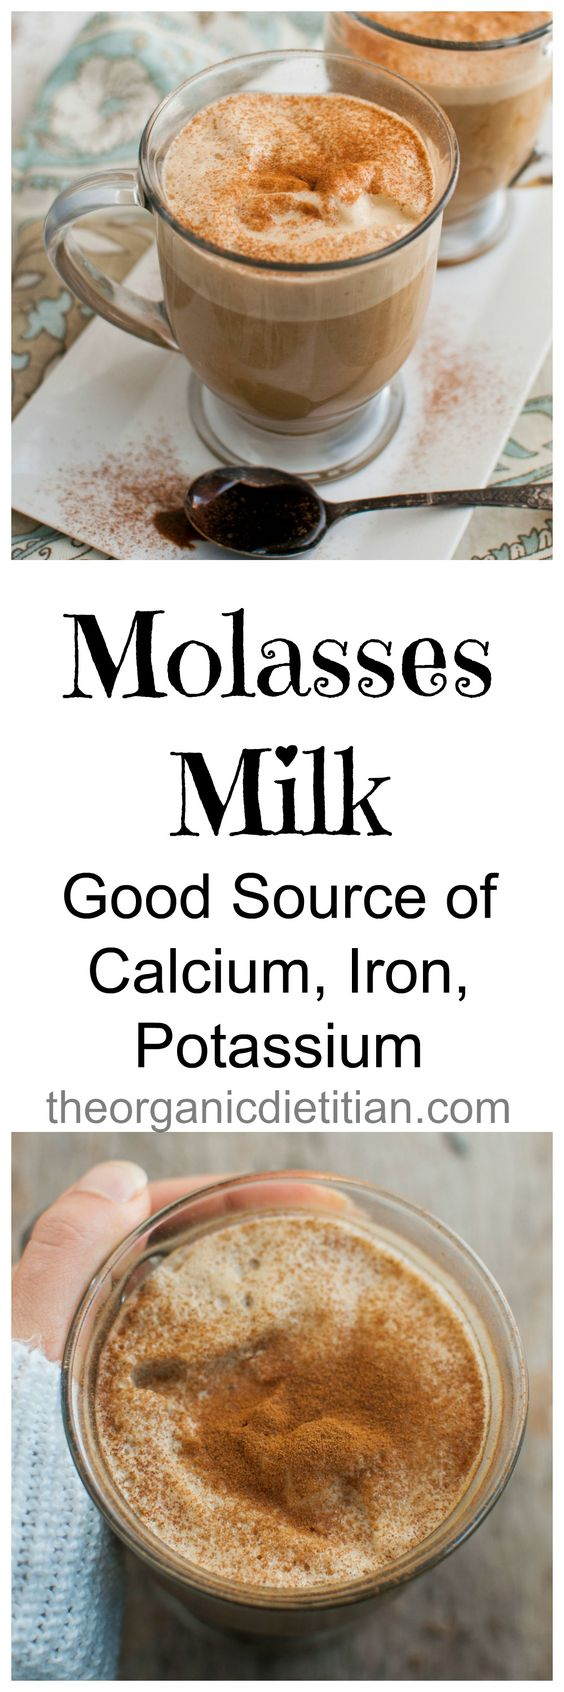 Molasses Milk is a great way to get calcium, iron, potassium and antioxidants. Serve warm or cold.